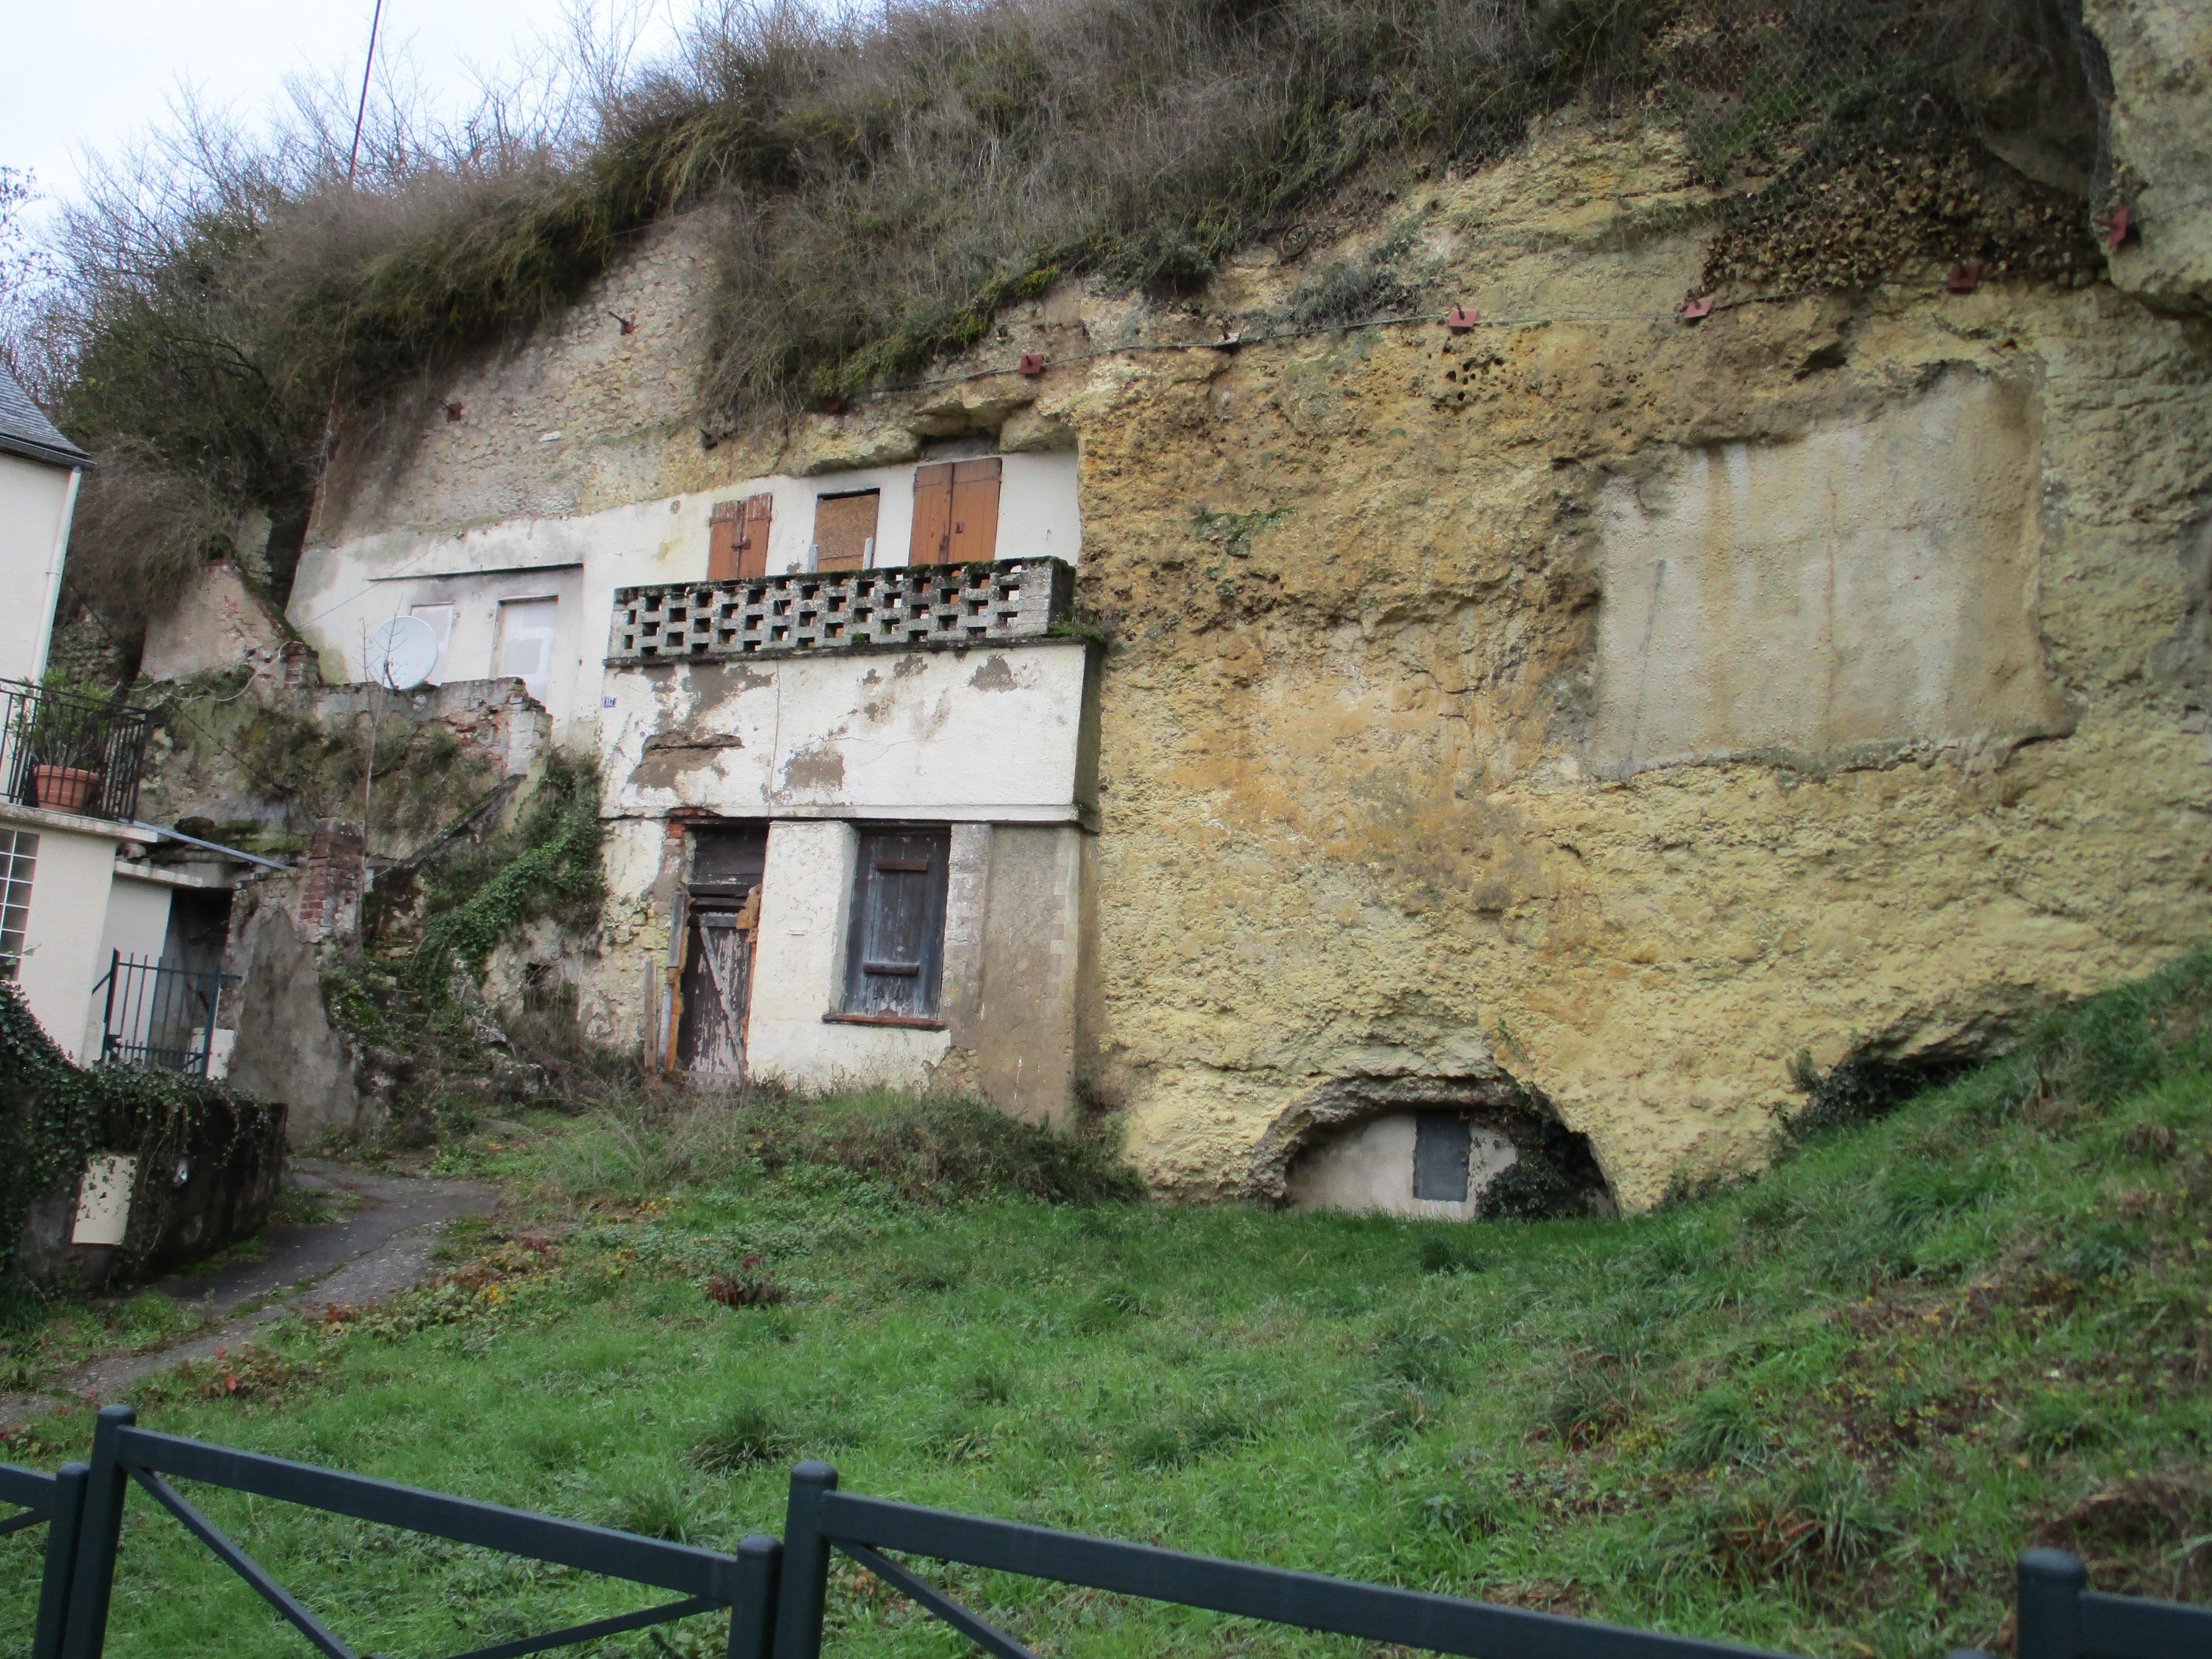 Cave house, Amboise, France